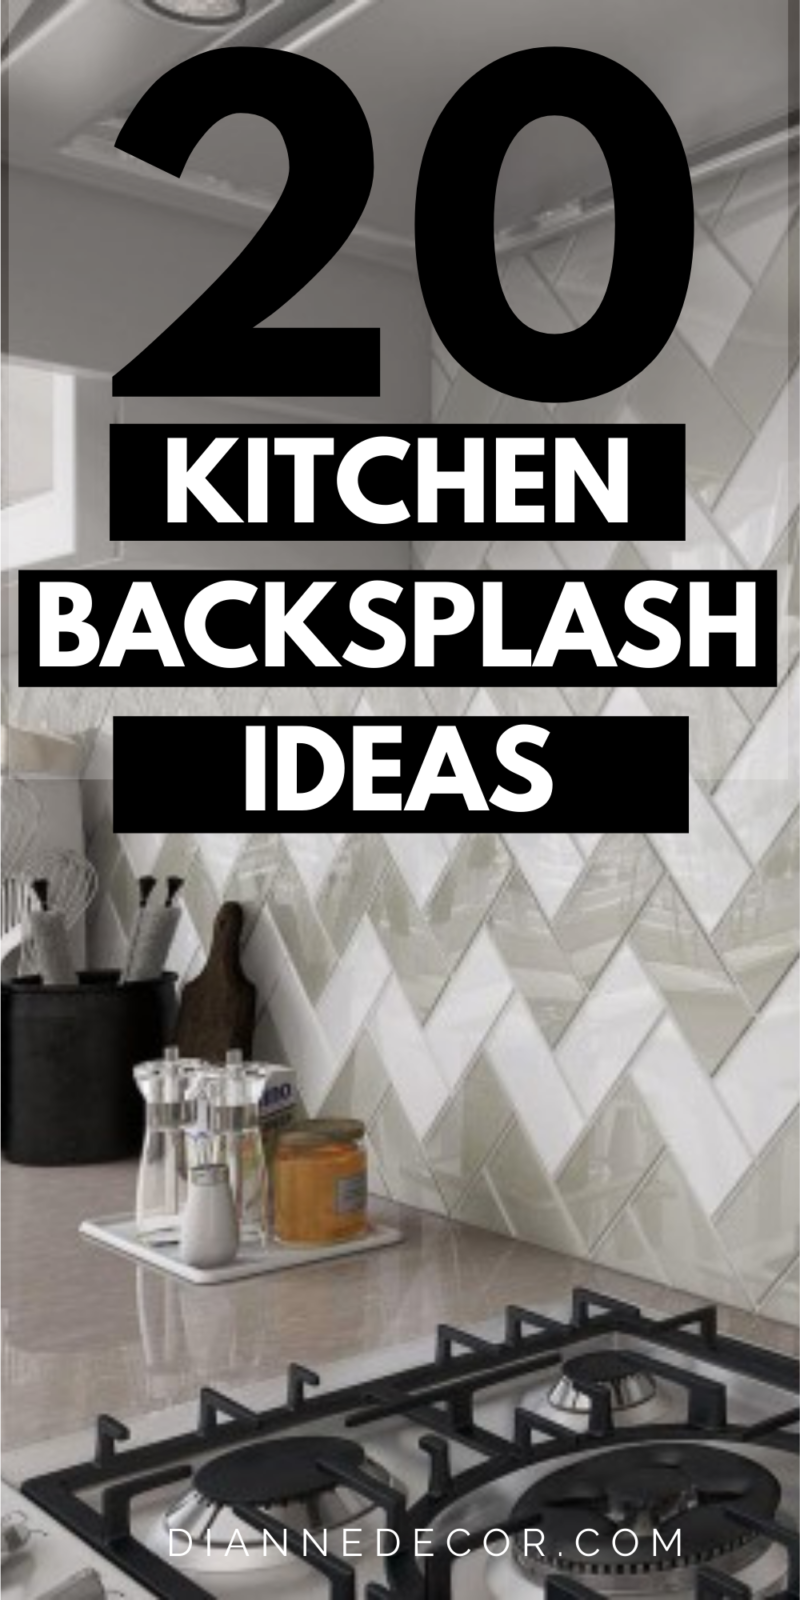 One of the most cost-effective ways to update your kitchen is to look into new kitchen backsplash ideas. Here are 20 to check out.